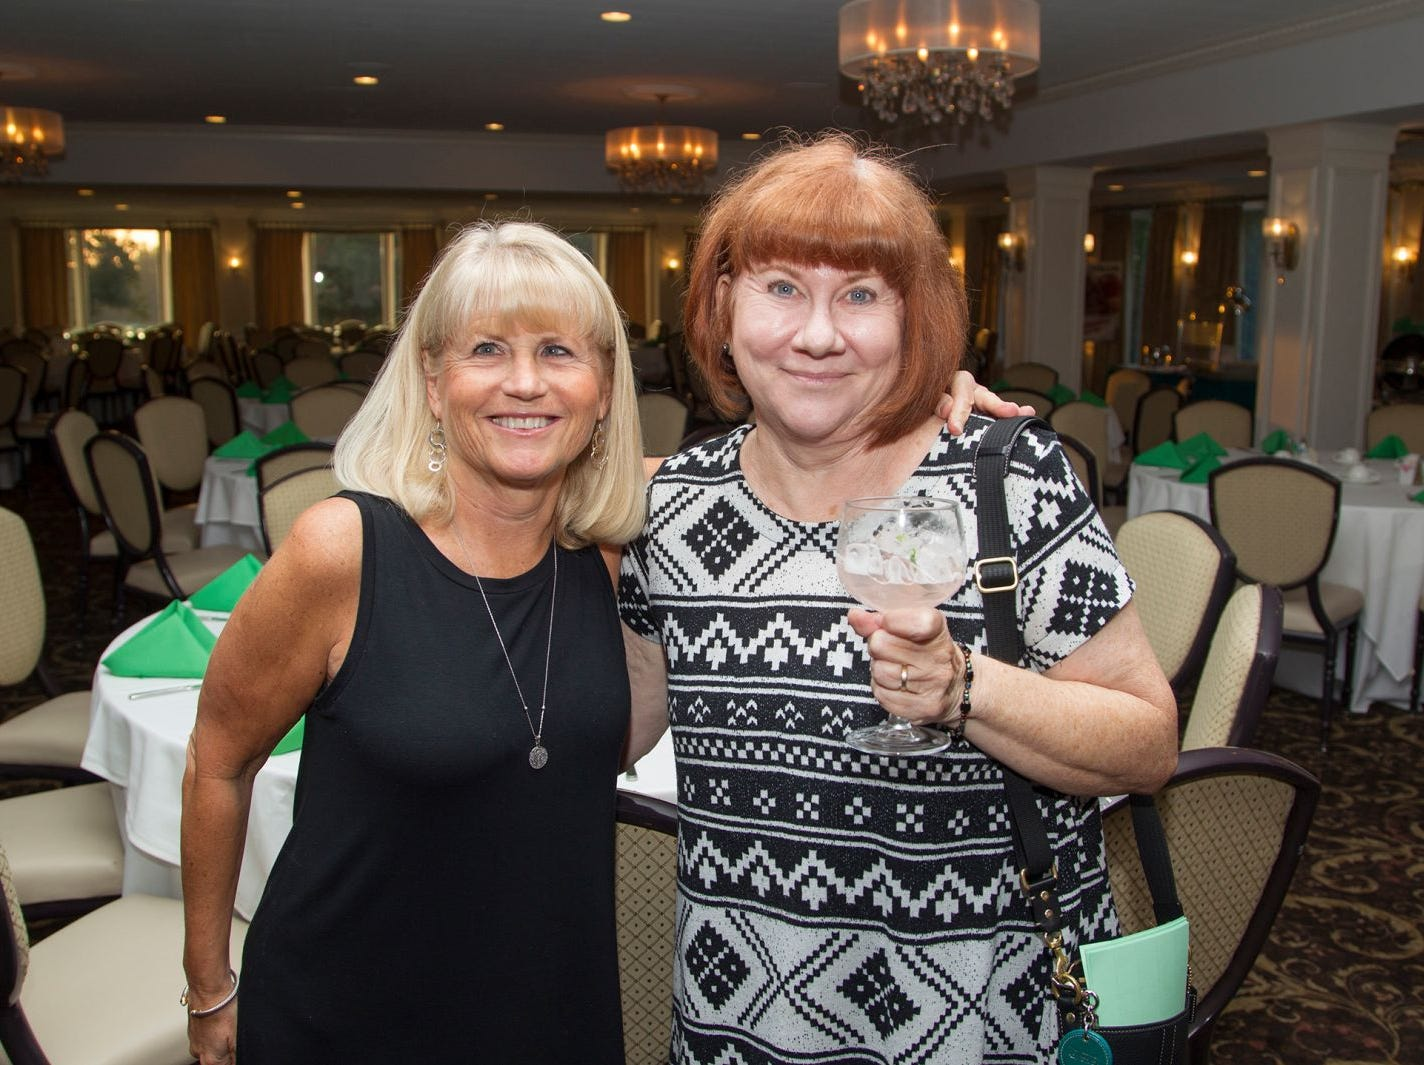 Diane Lento and Joanne Ivie. Ken's Krew Golf Outing at White Beeches Country Club in Haworth. Ken's Krew provides vocational training and job placement services for young adults with intellectual and developmental disabilities. 10/09/2018